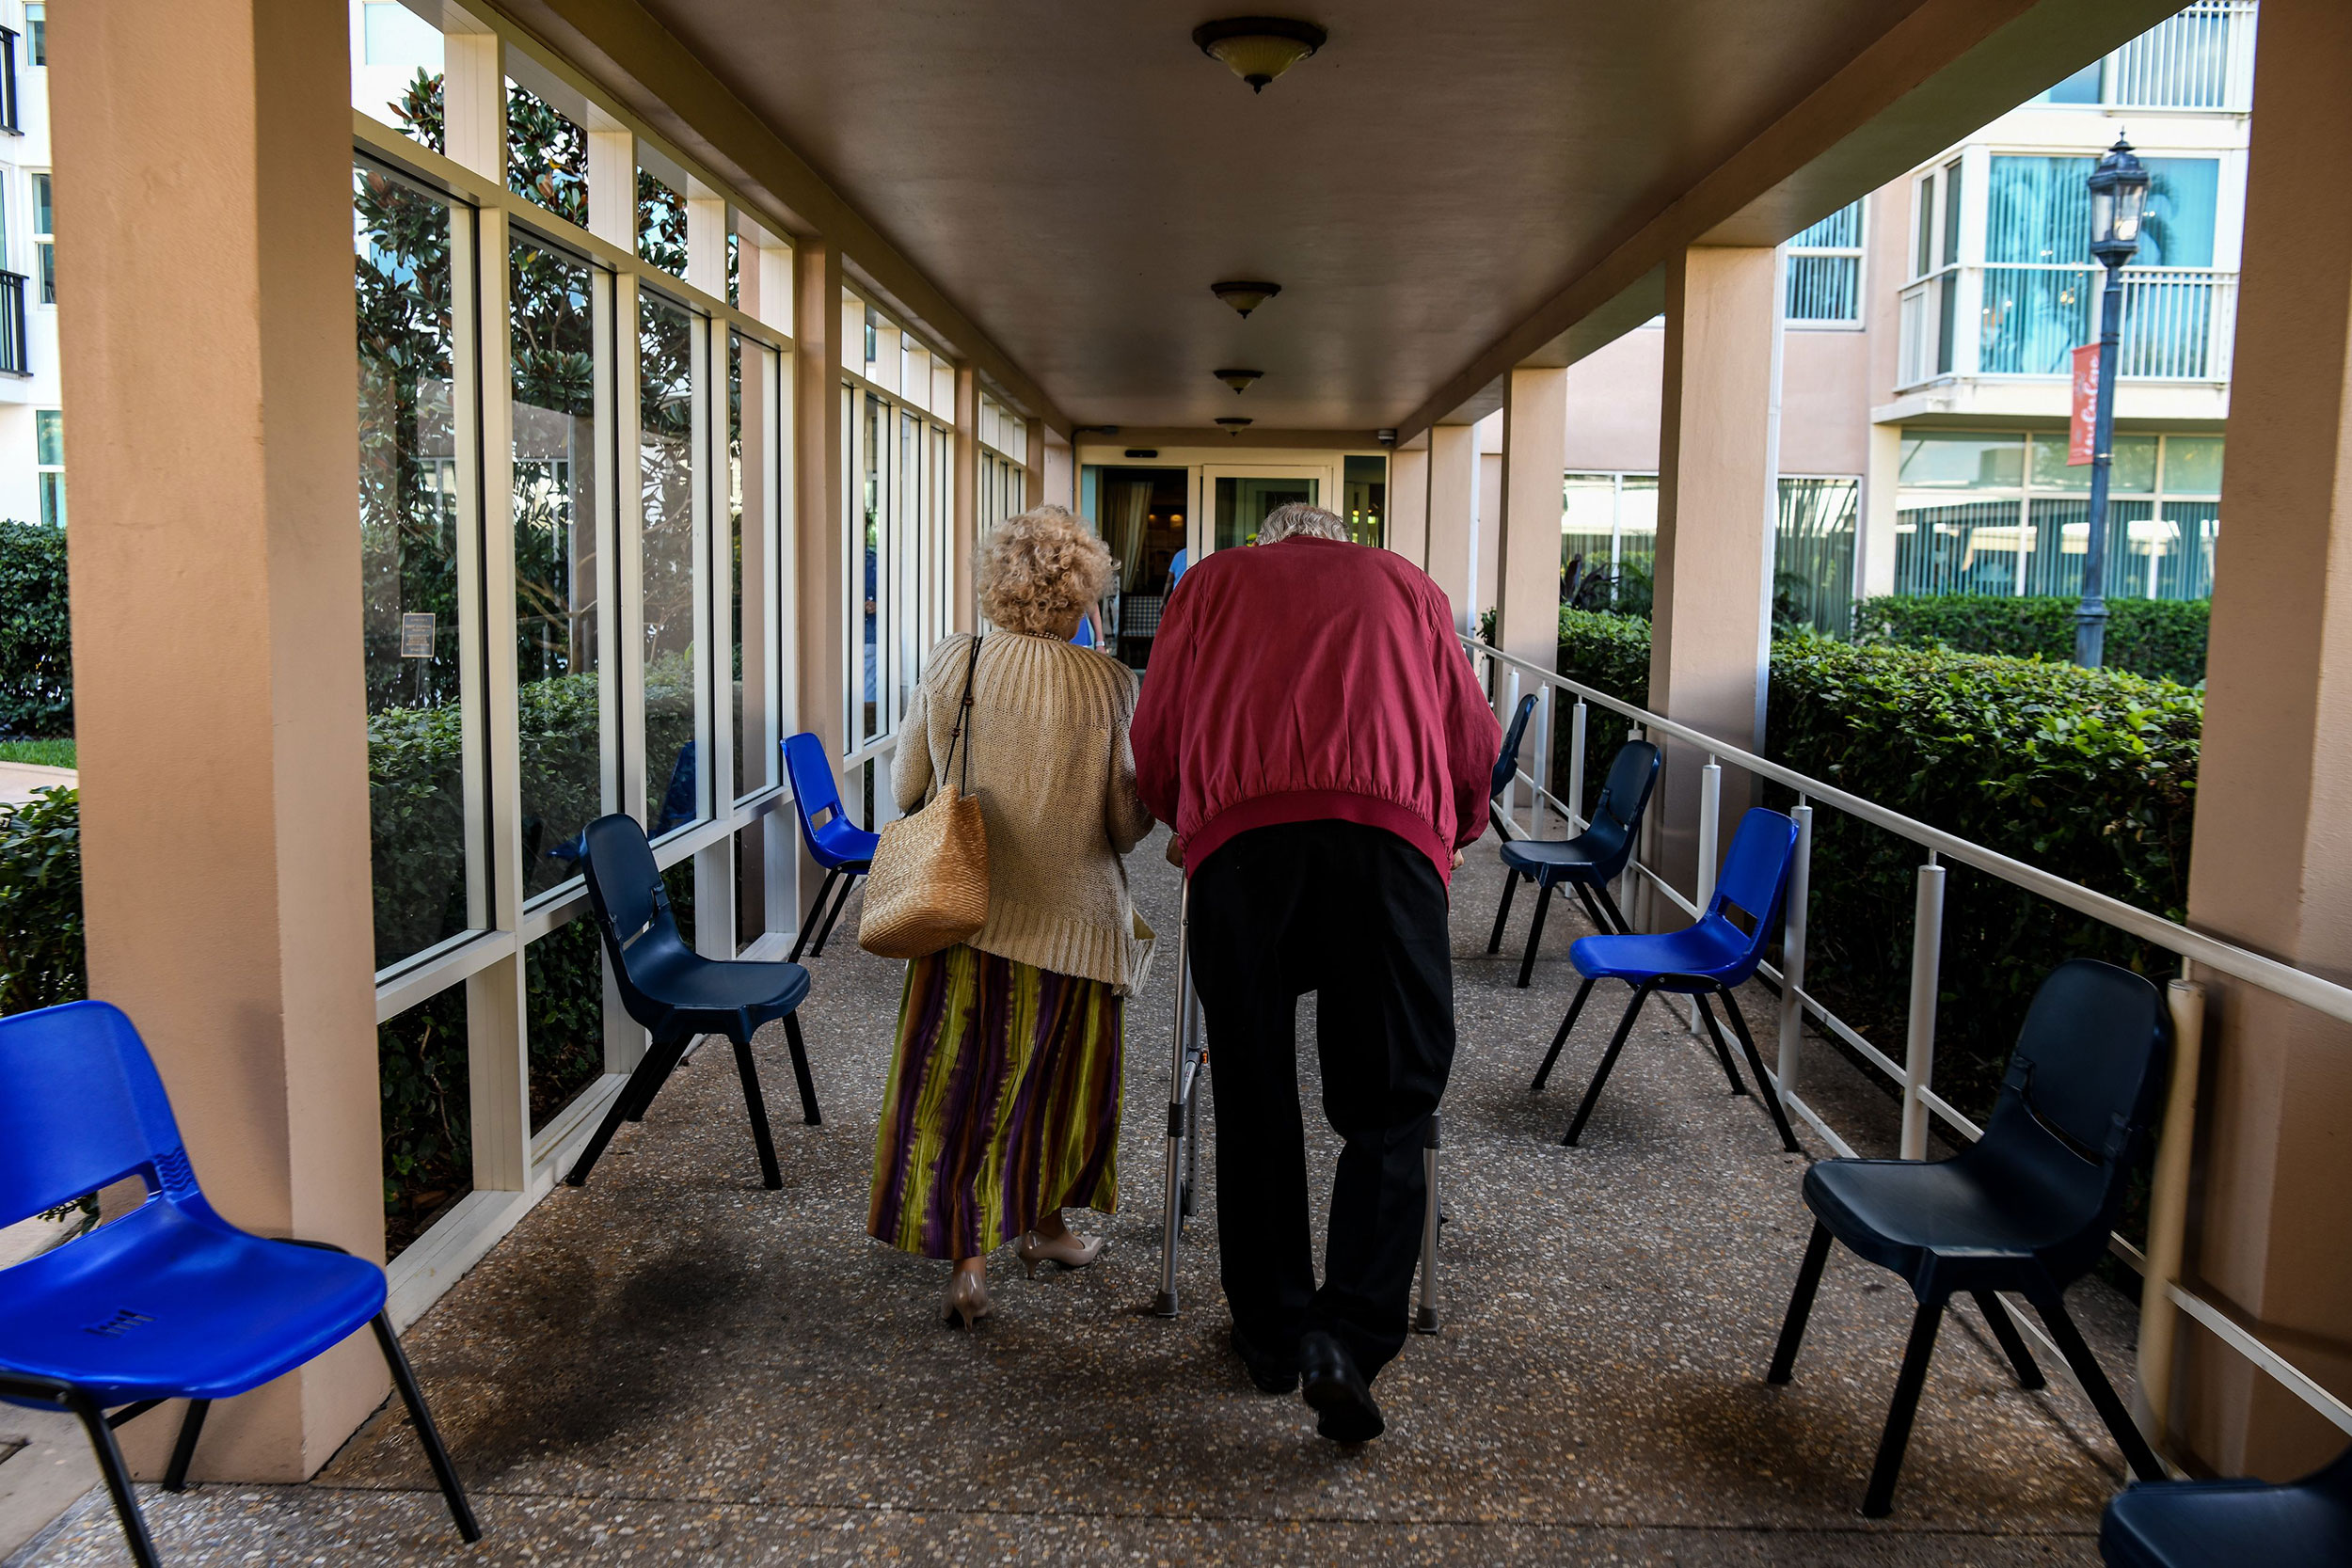 Florida seniors mark four months isolated indoors — and the virus is only getting worse